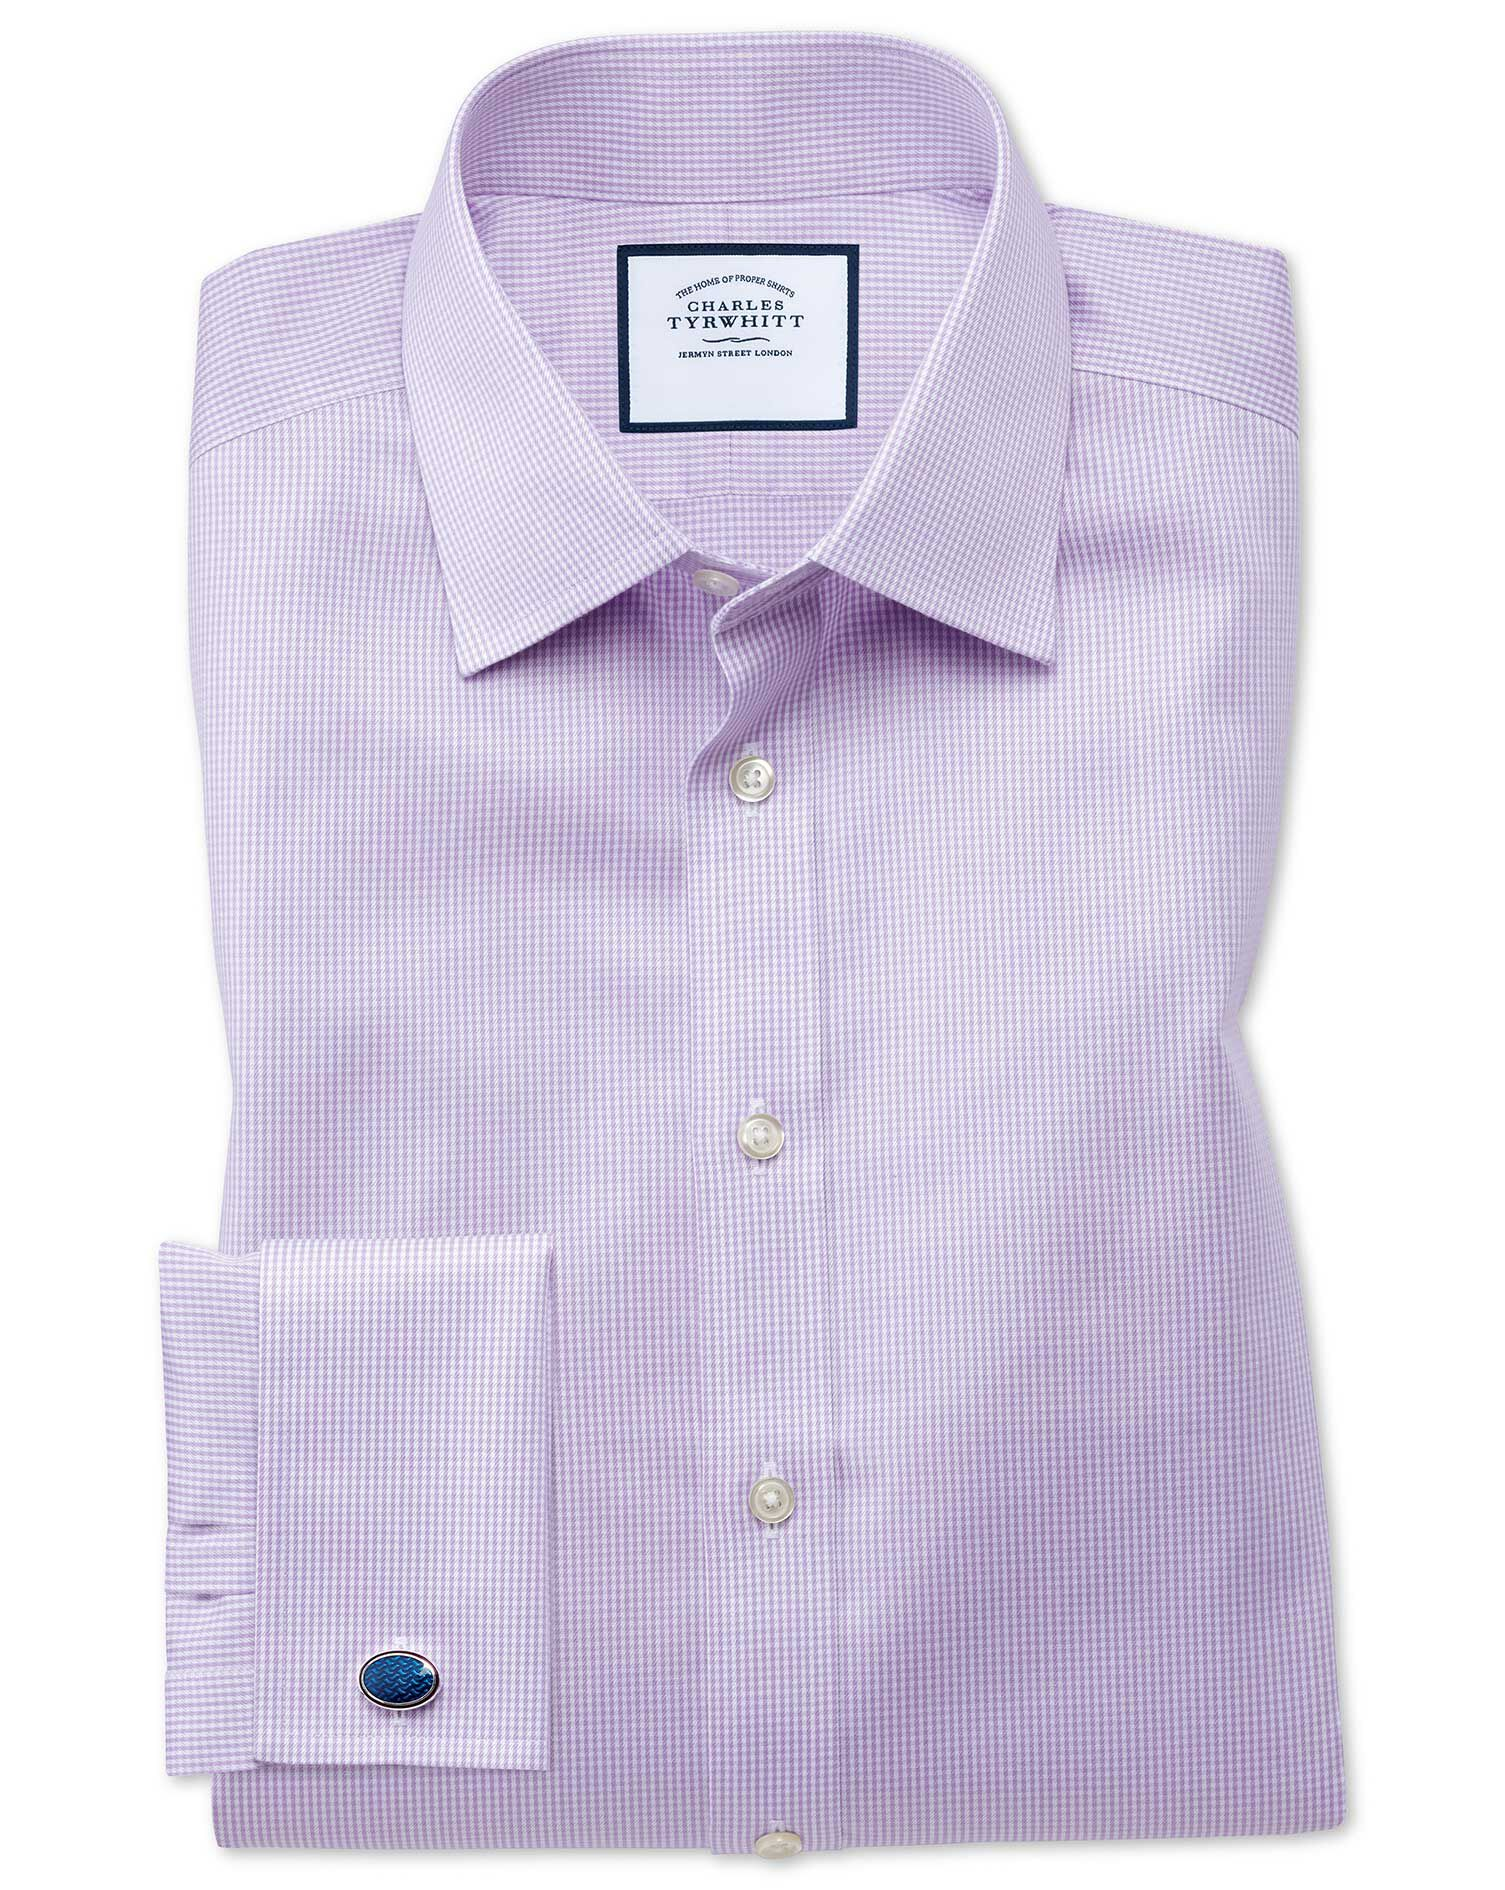 Slim Fit Non-Iron Puppytooth Lilac Cotton Formal Shirt Single Cuff Size 16.5/35 by Charles Tyrwhitt